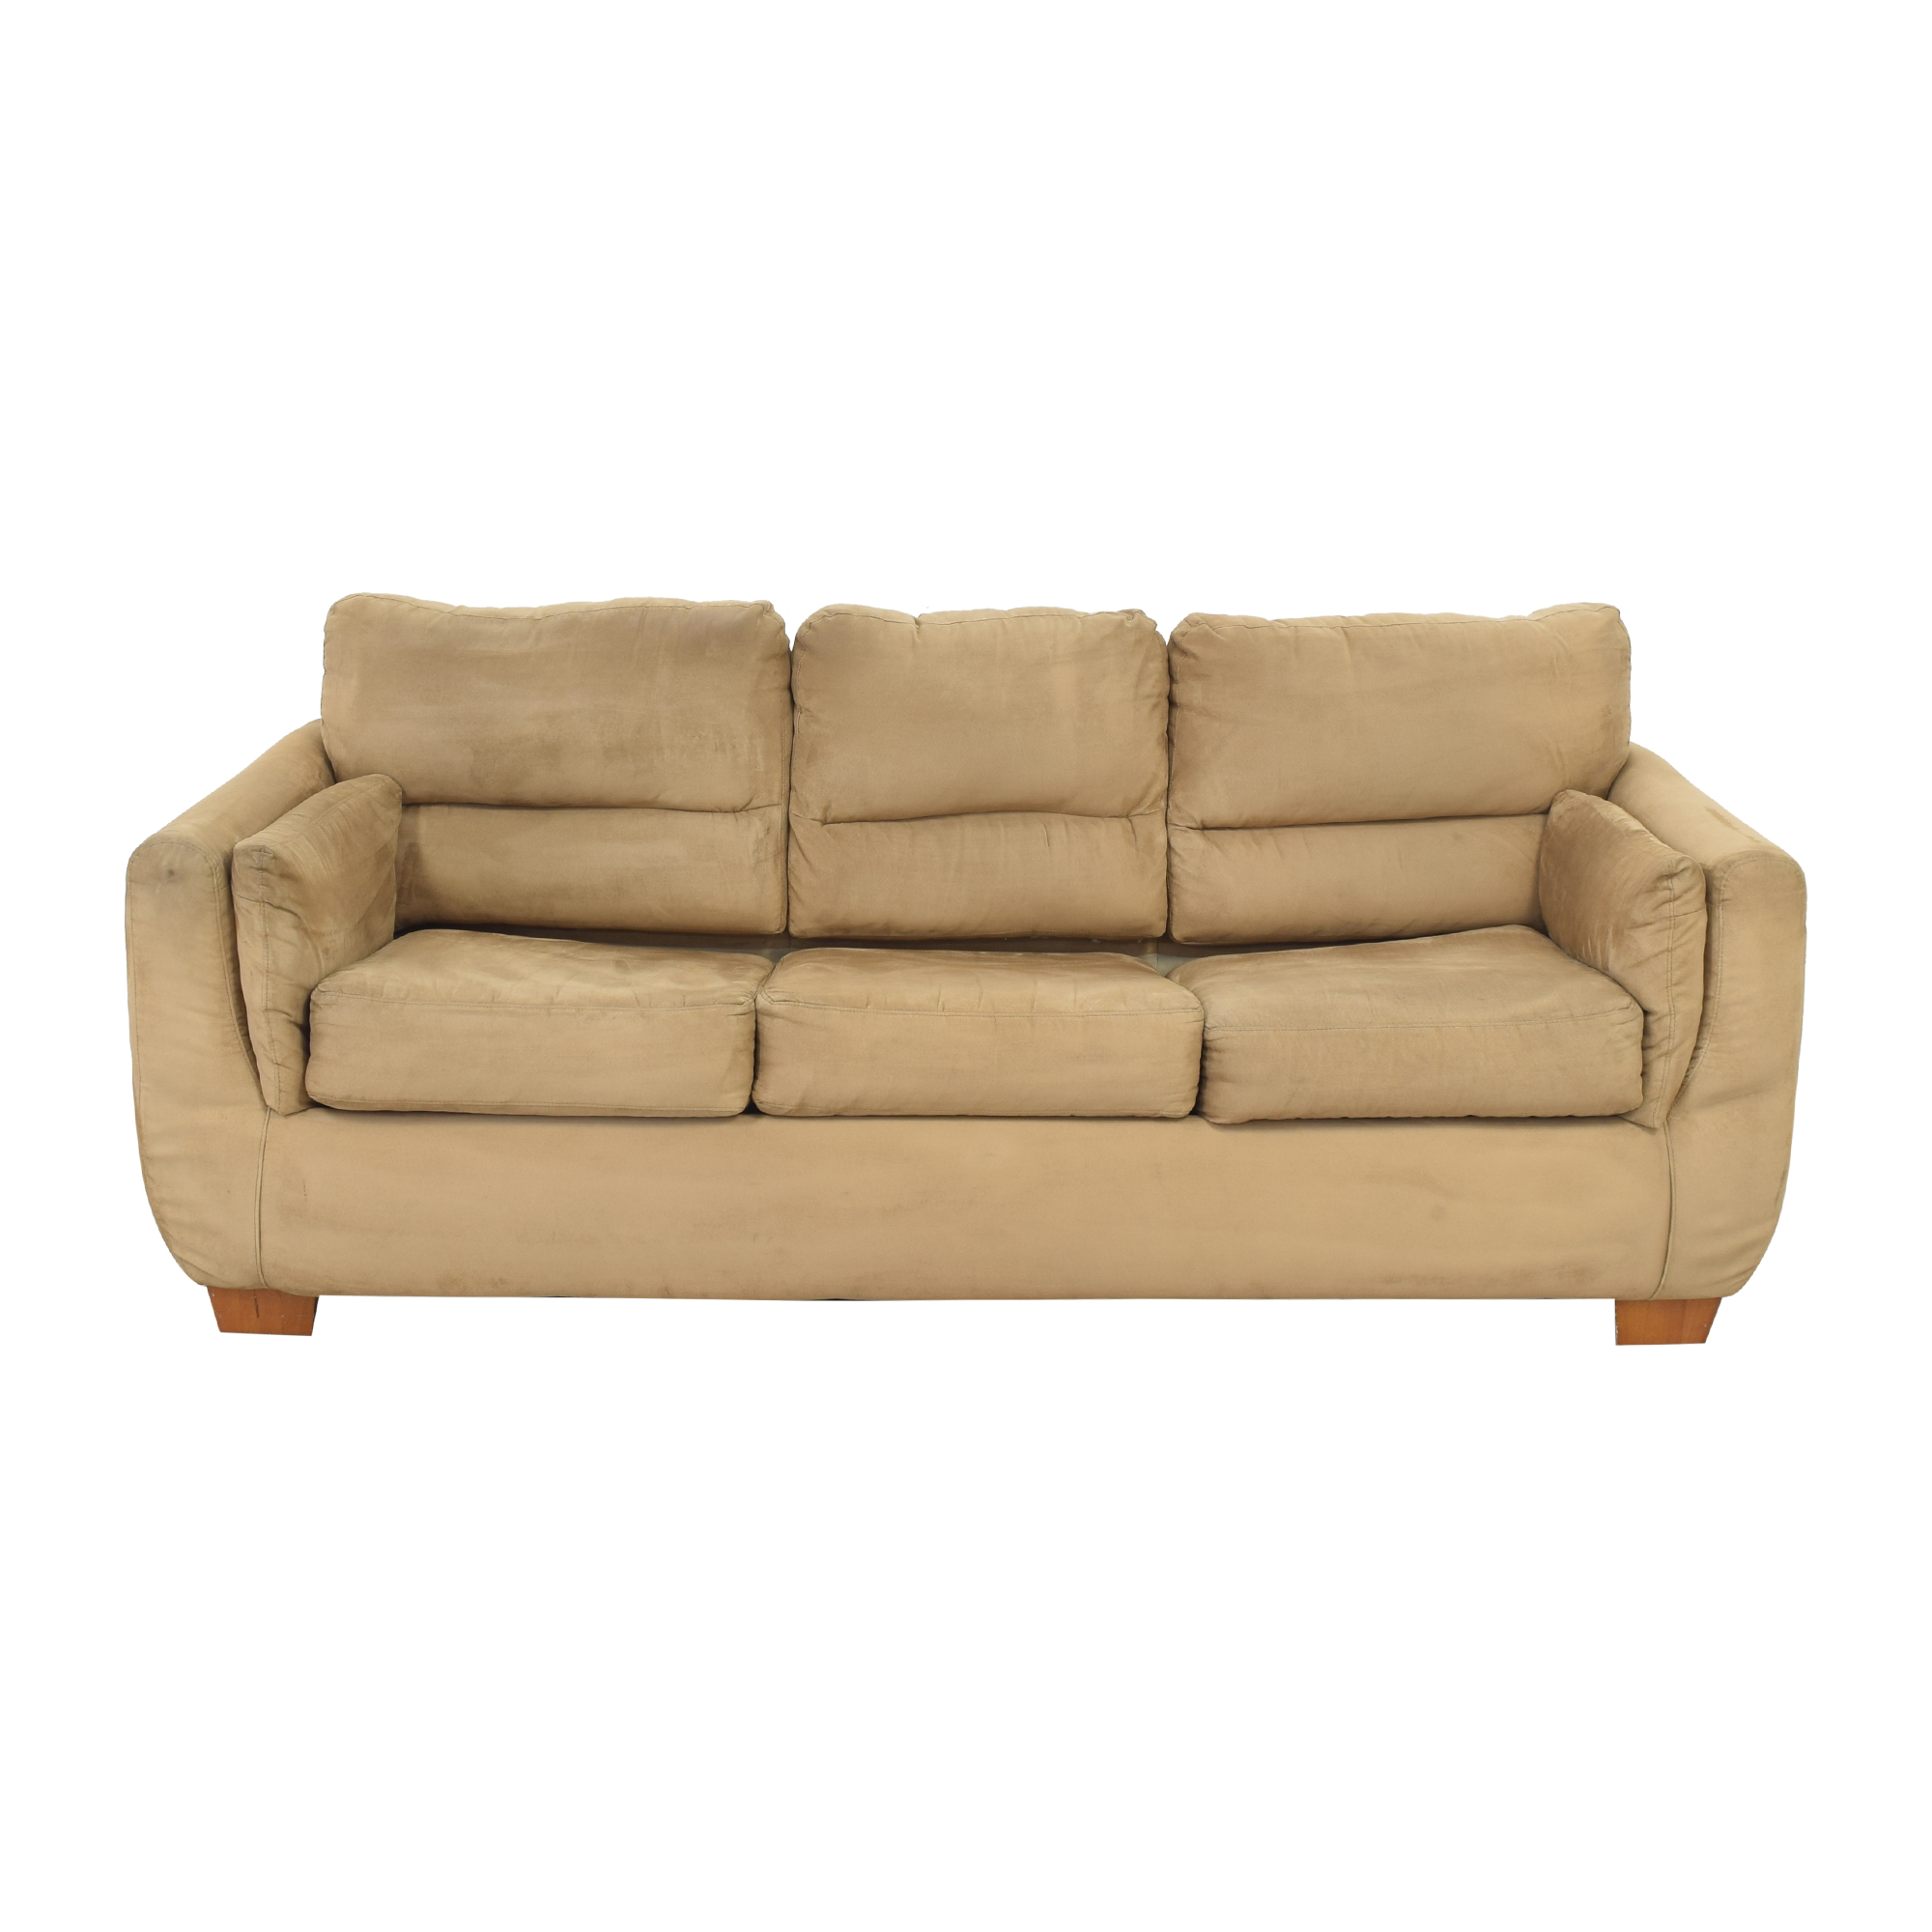 buy  Stratford Sleeper Sofa online